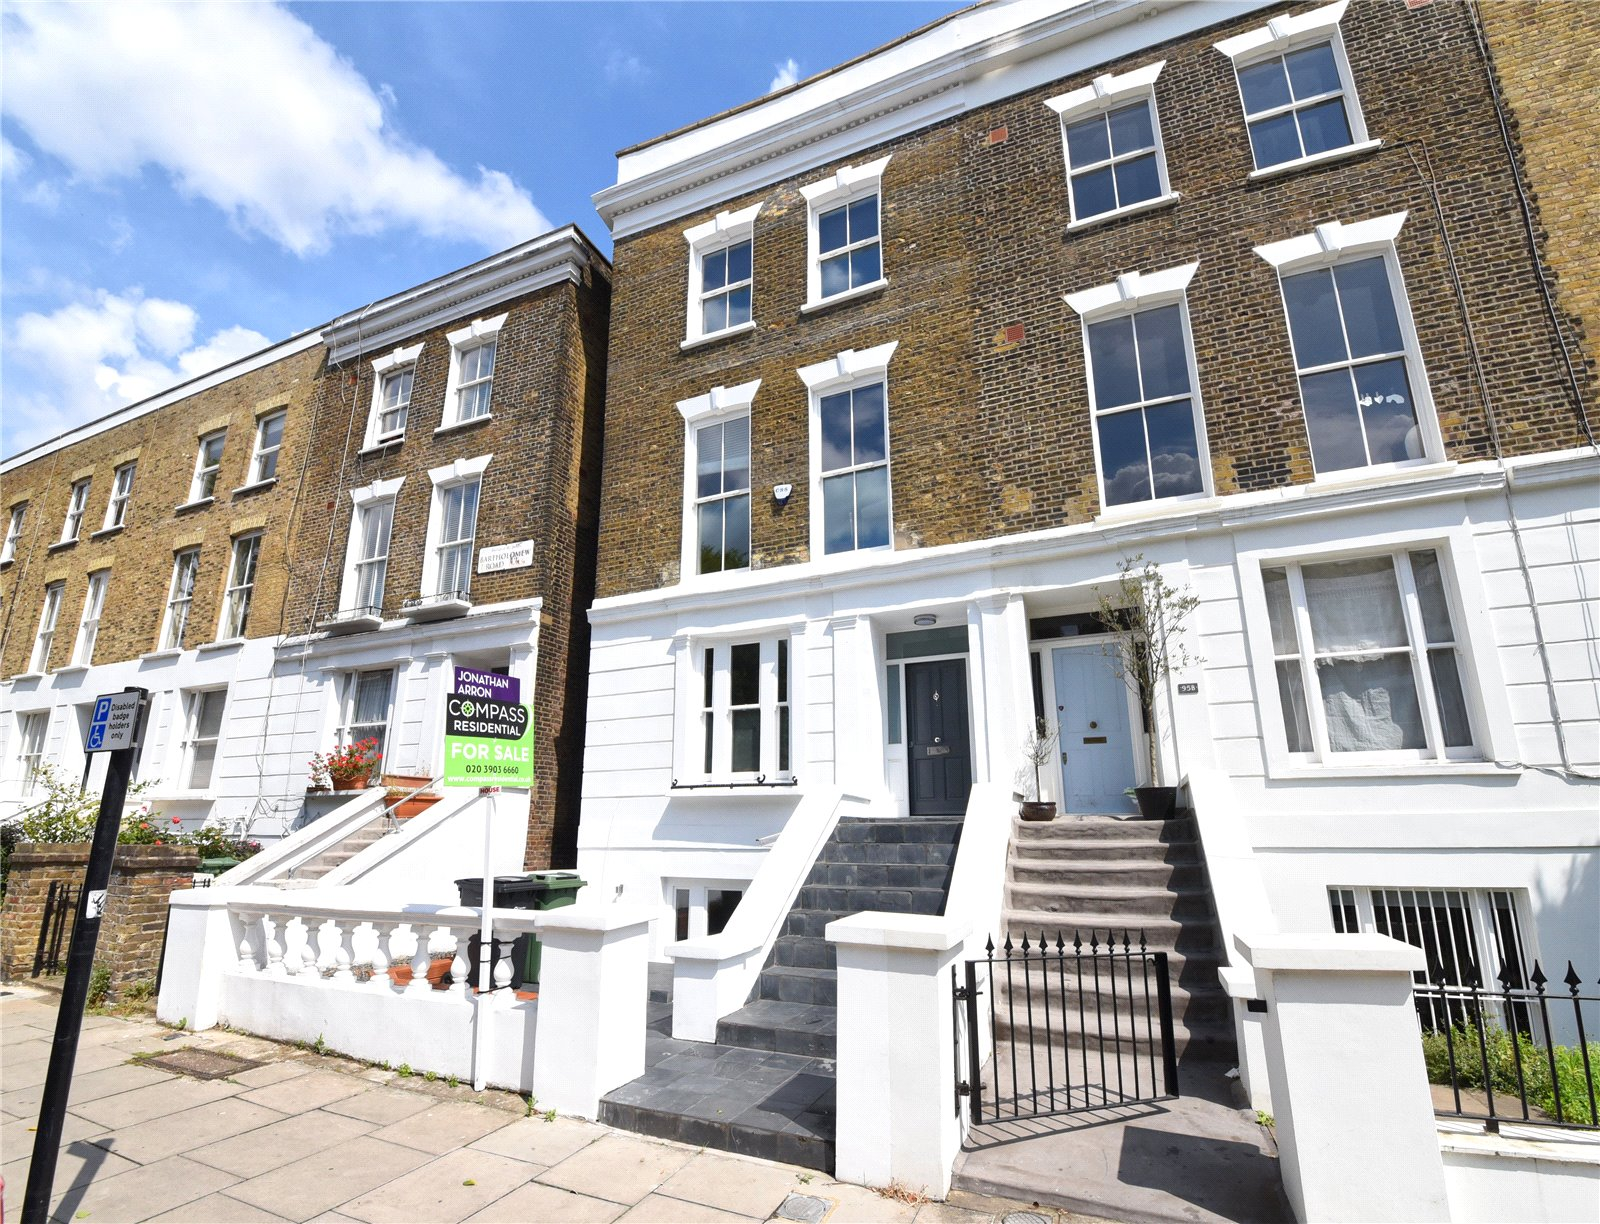 4 bed house for sale in Bartholomew Road, Kentish Town - Property Image 1